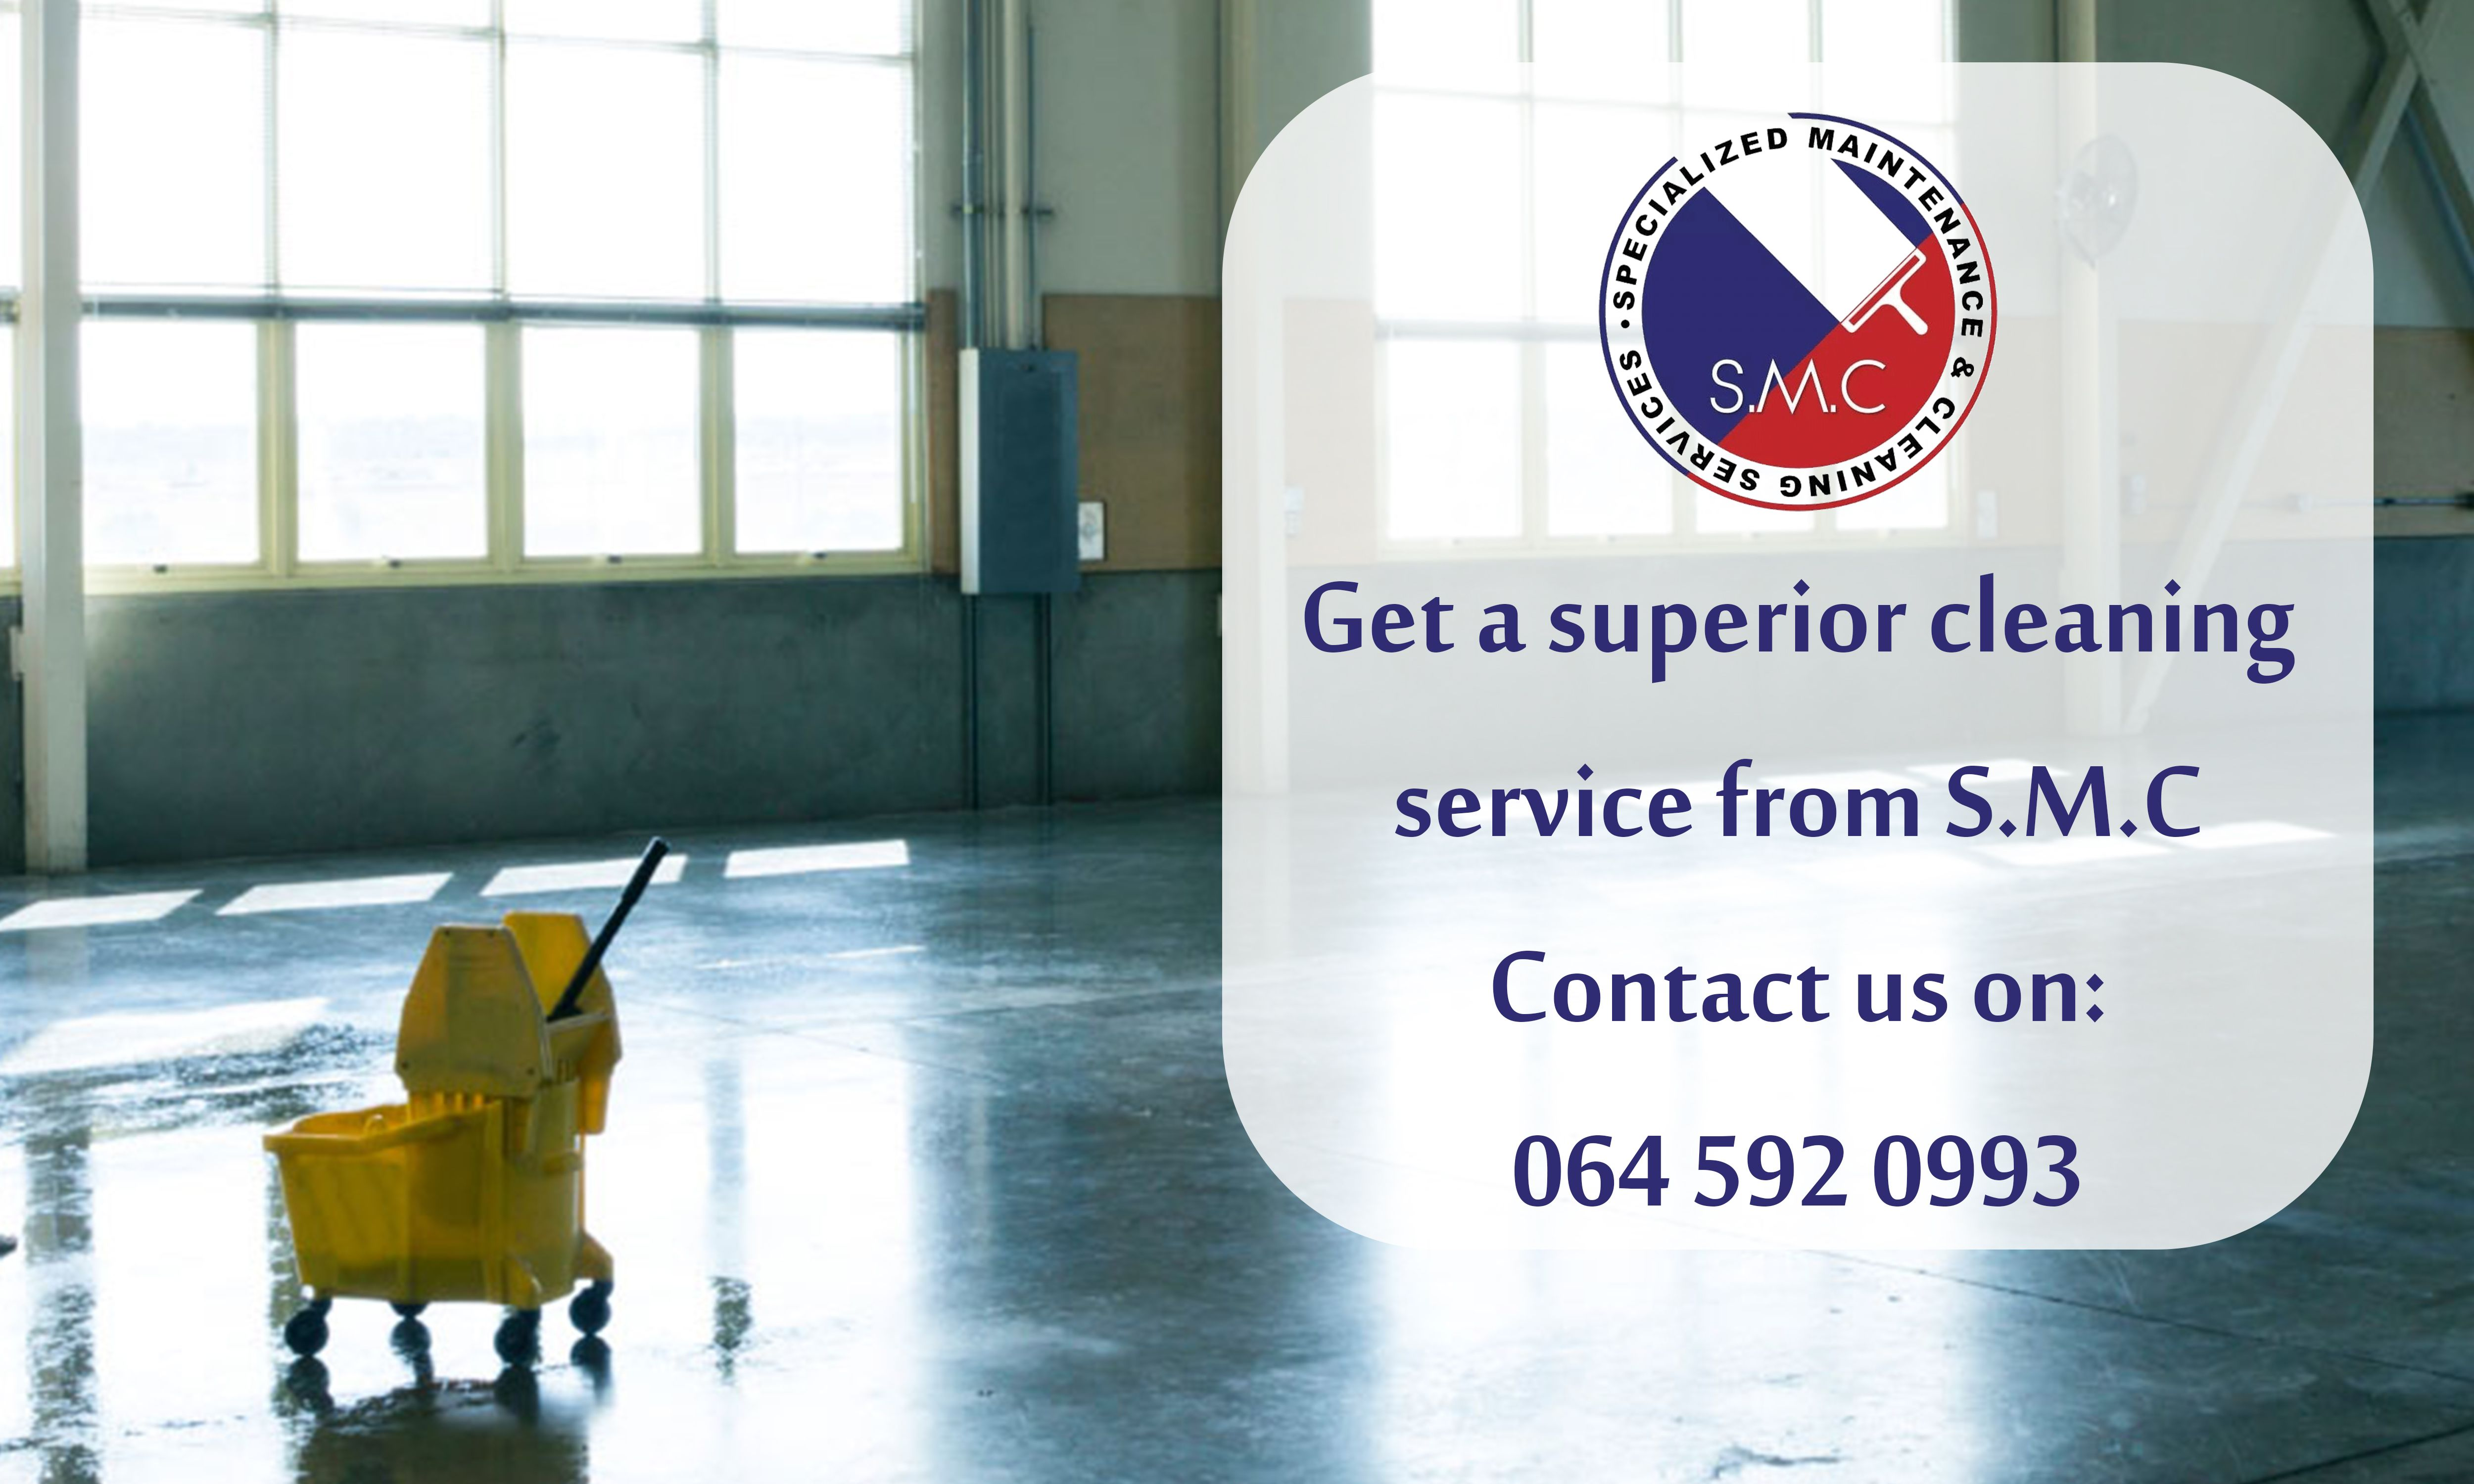 Get a superior cleaning service from S.M.C Here at